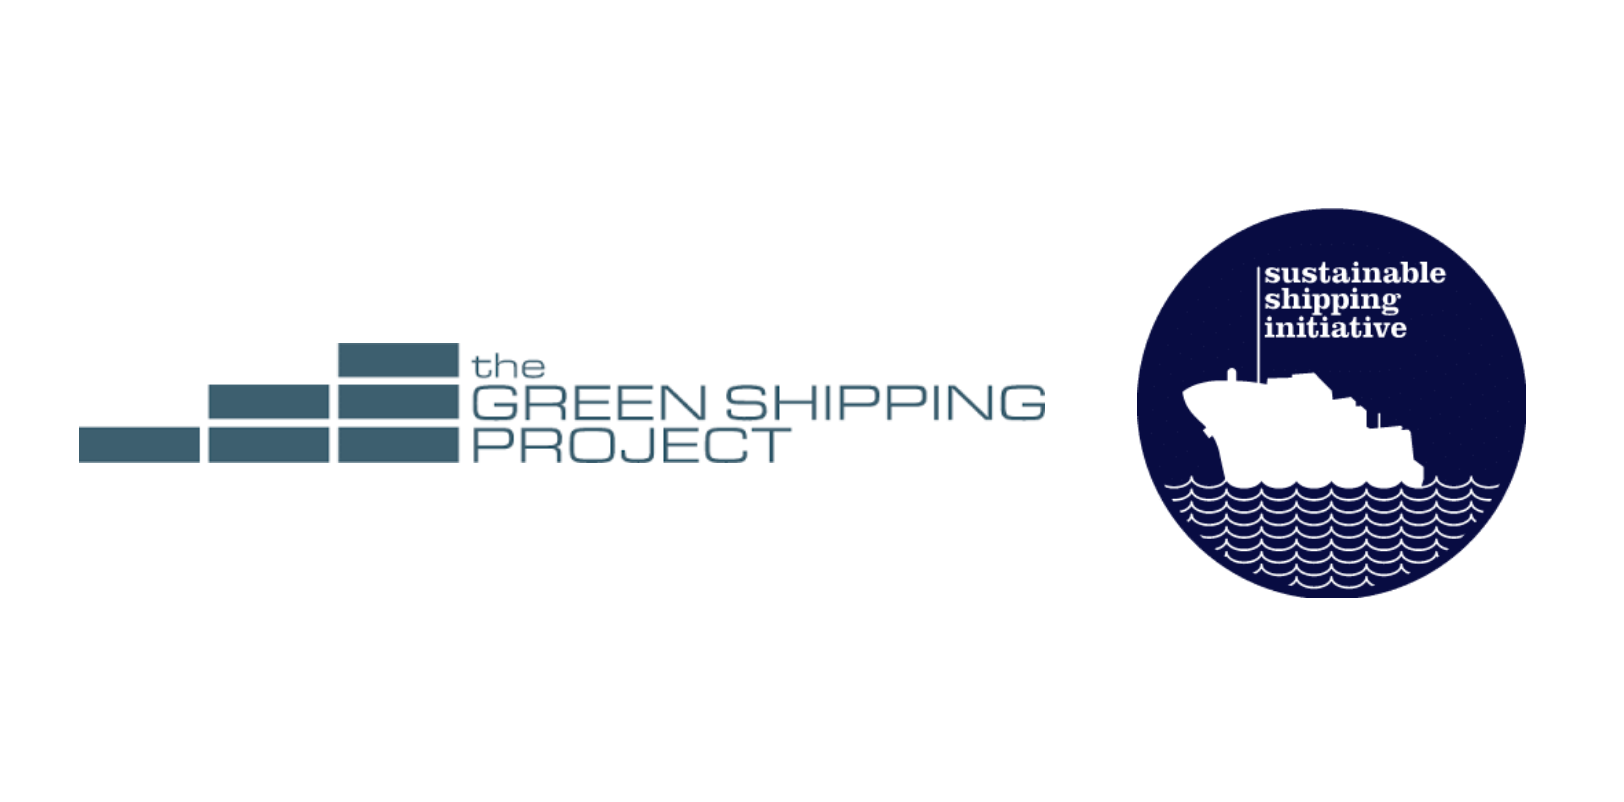 Green Shipping Project and Sustainable Shipping Initiative logos side by side